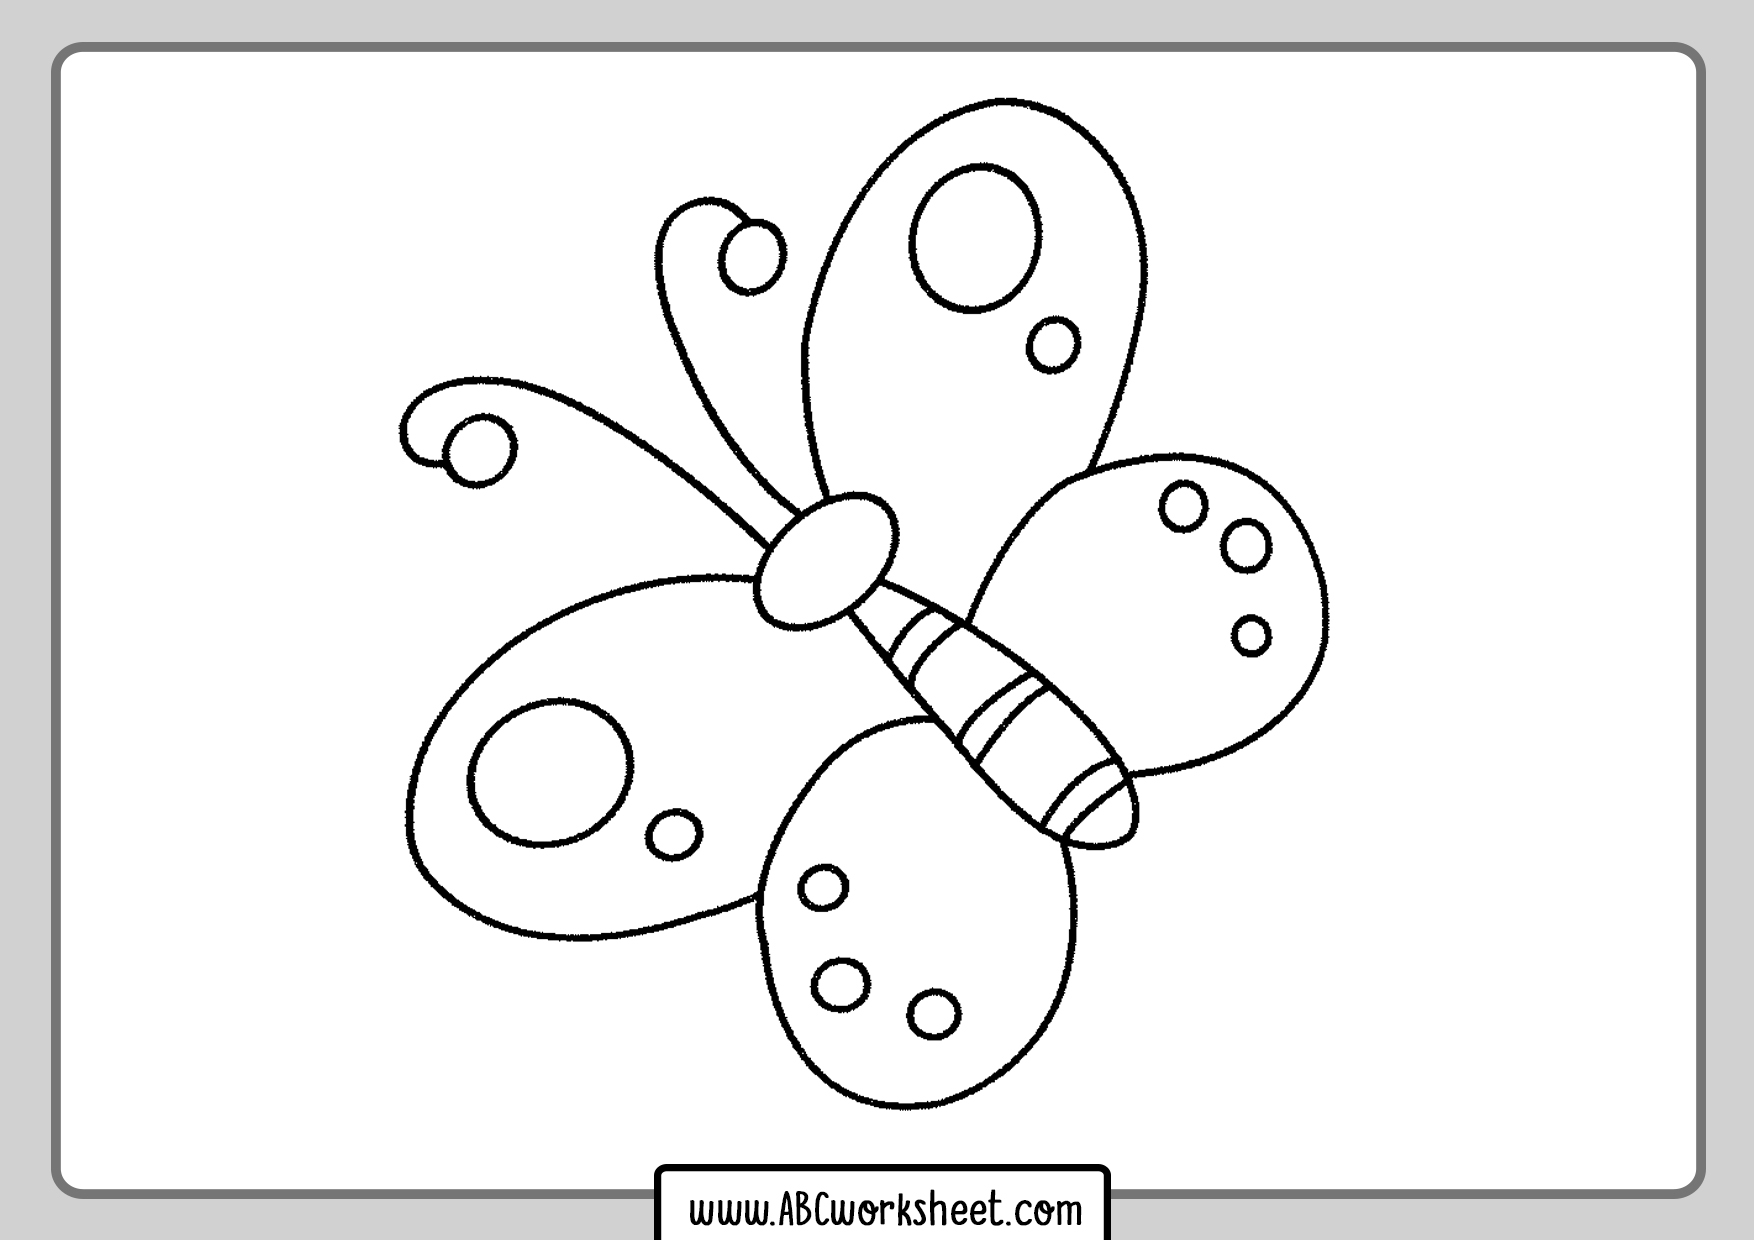 Printable Simple Butterfly Coloring Page For Kids